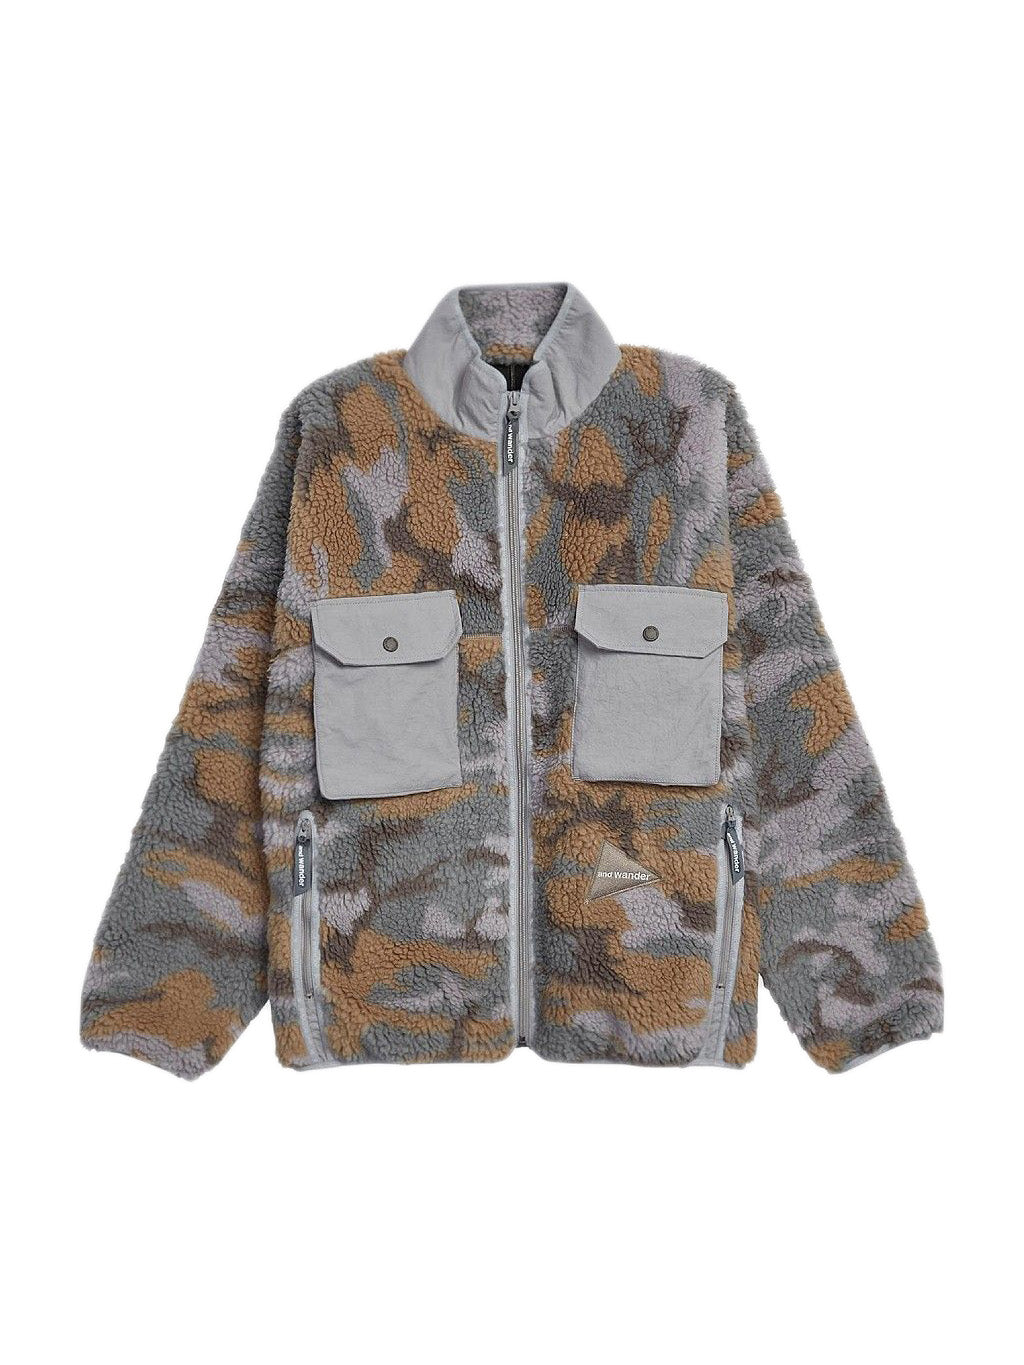 Multi Jacquard Boa Jacket